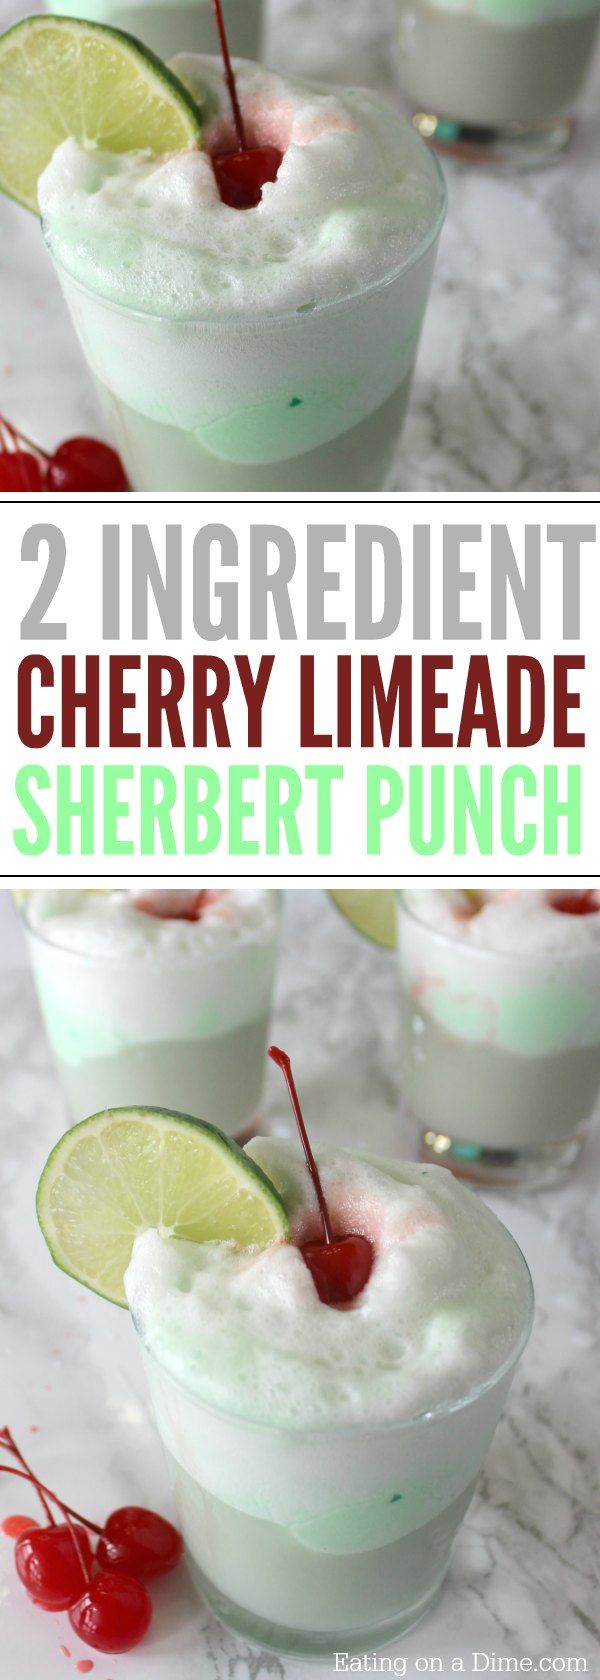 You just need 2 ingredients to make this easy Cherry Limeade Sherbert Punch Recipe -This quick and Easy Party Punch recipe is the best! (best halloween appetizers)